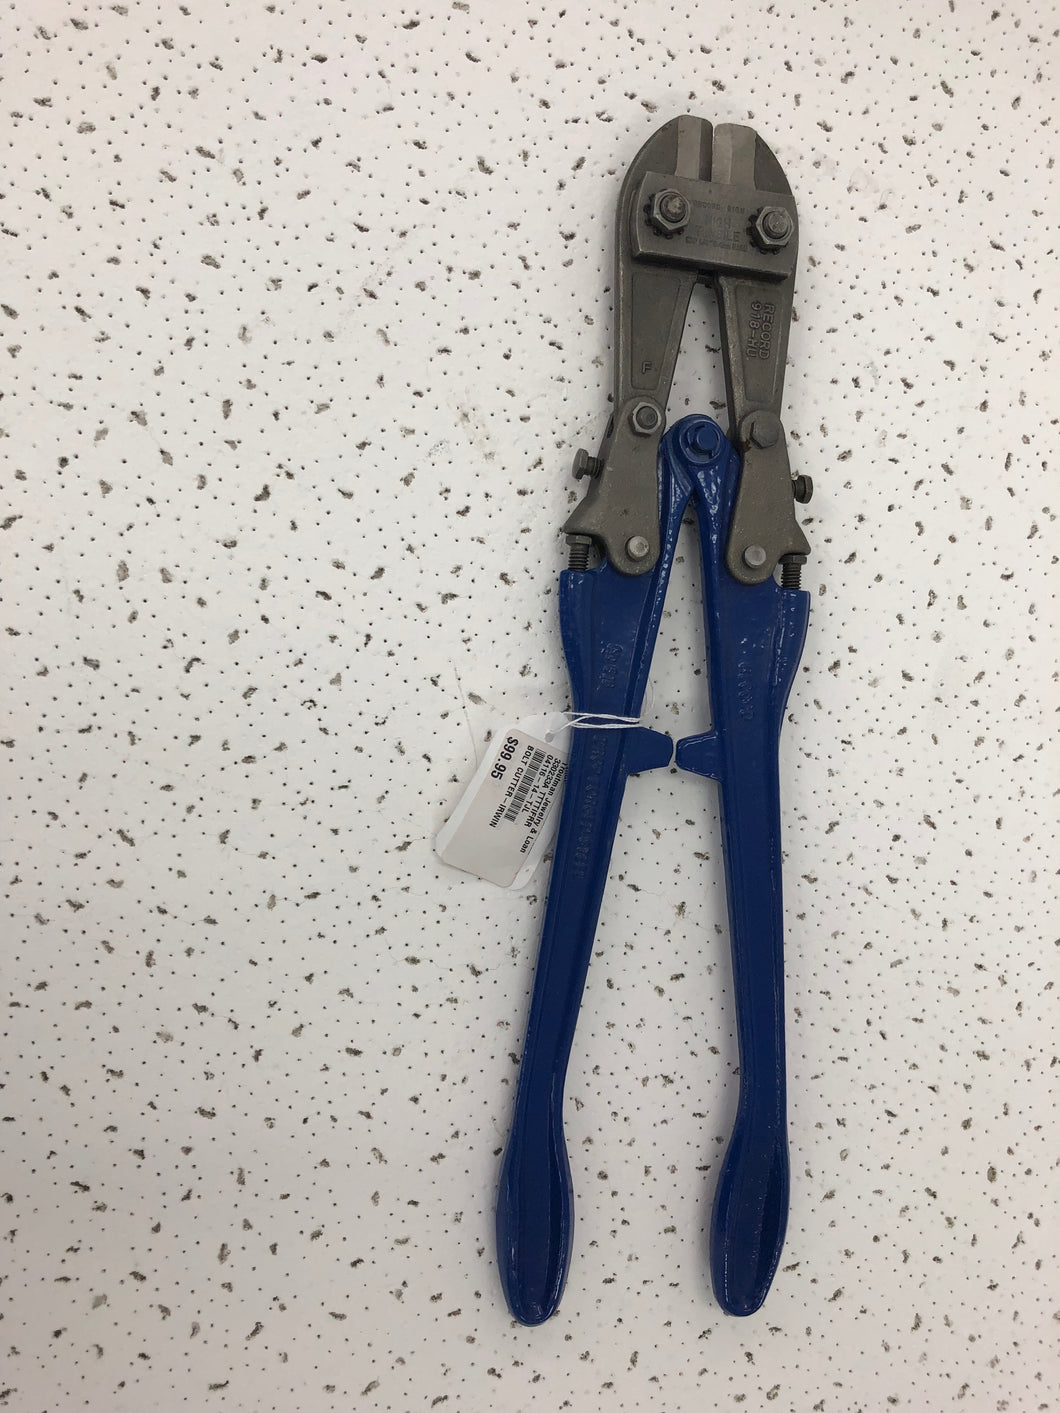 Irwin Record 918h High Tensile Bolt Cutters, Pre-owned item #330233A